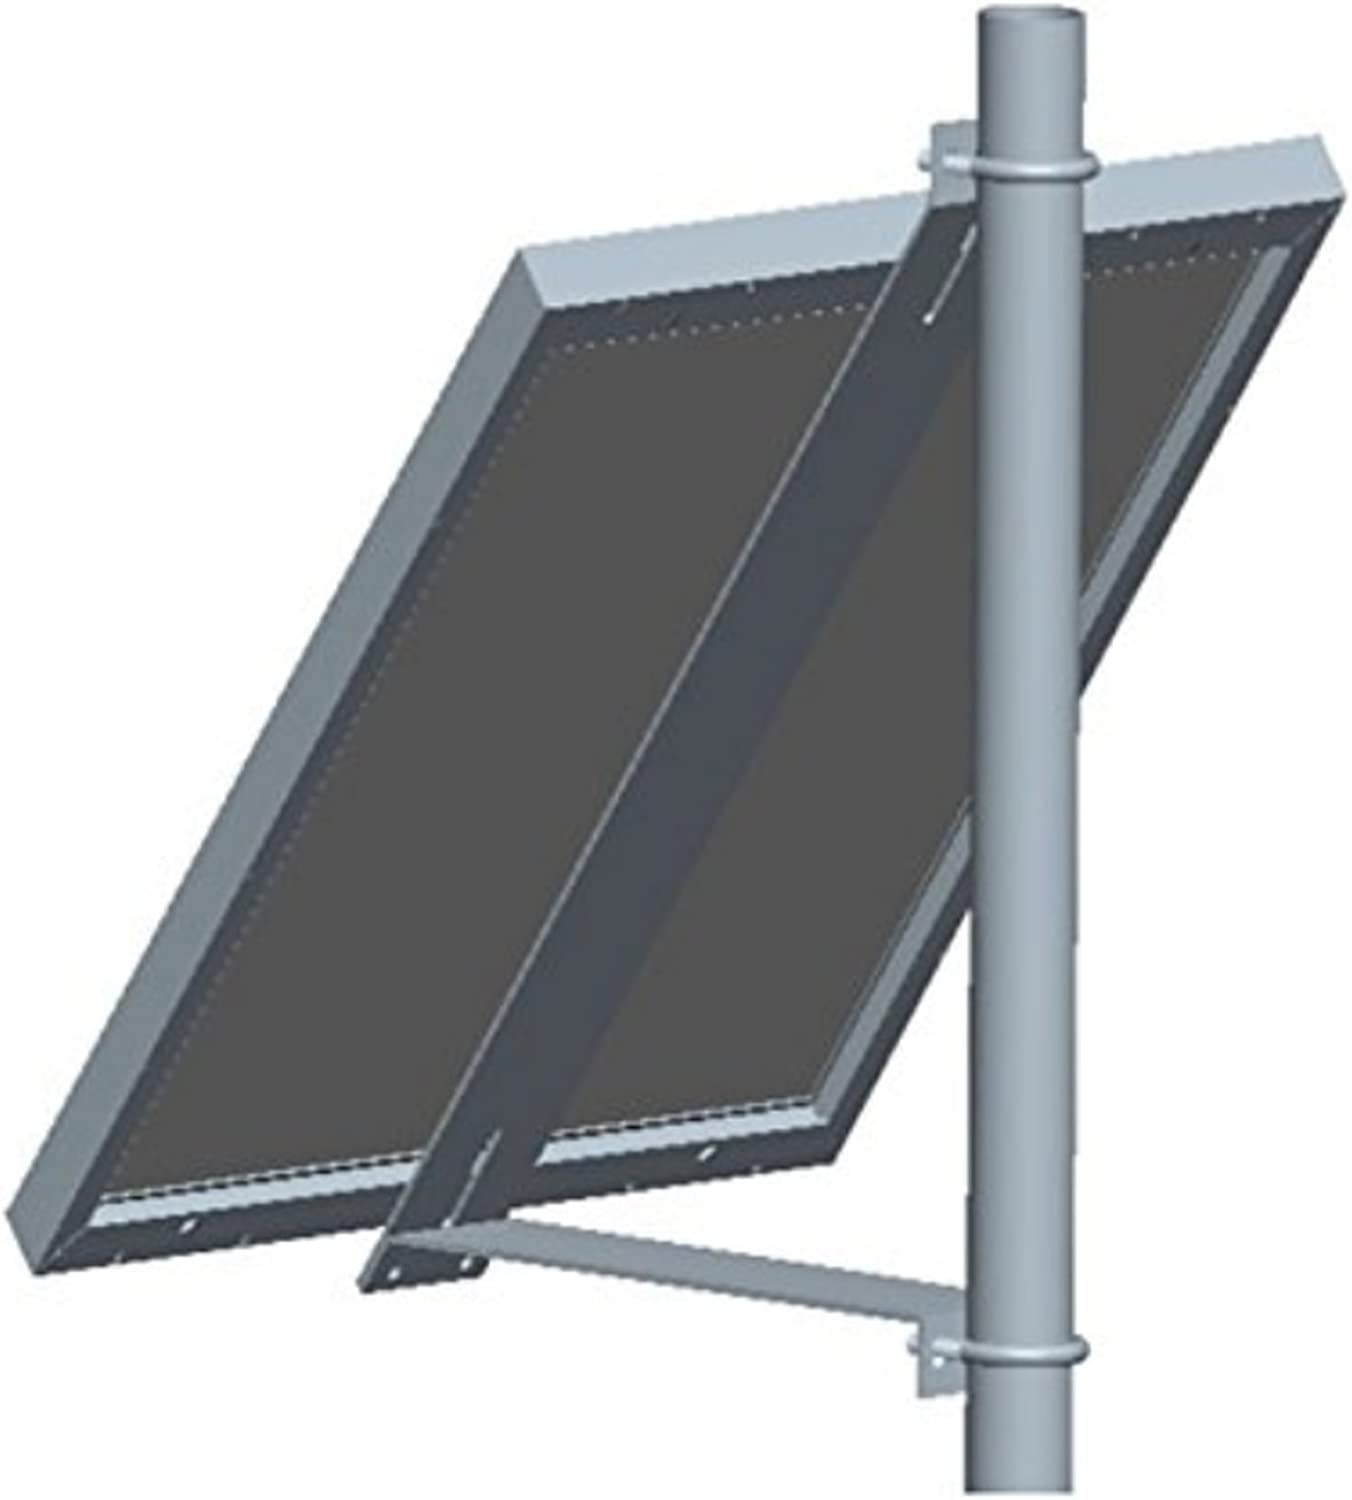 Solar Stent Solar Panel Pole Mount Kit Single Arm Pole Wall Mount Bracket Support Solar Panel 5W to 50W and 30W to 60W (Style   P-1002)